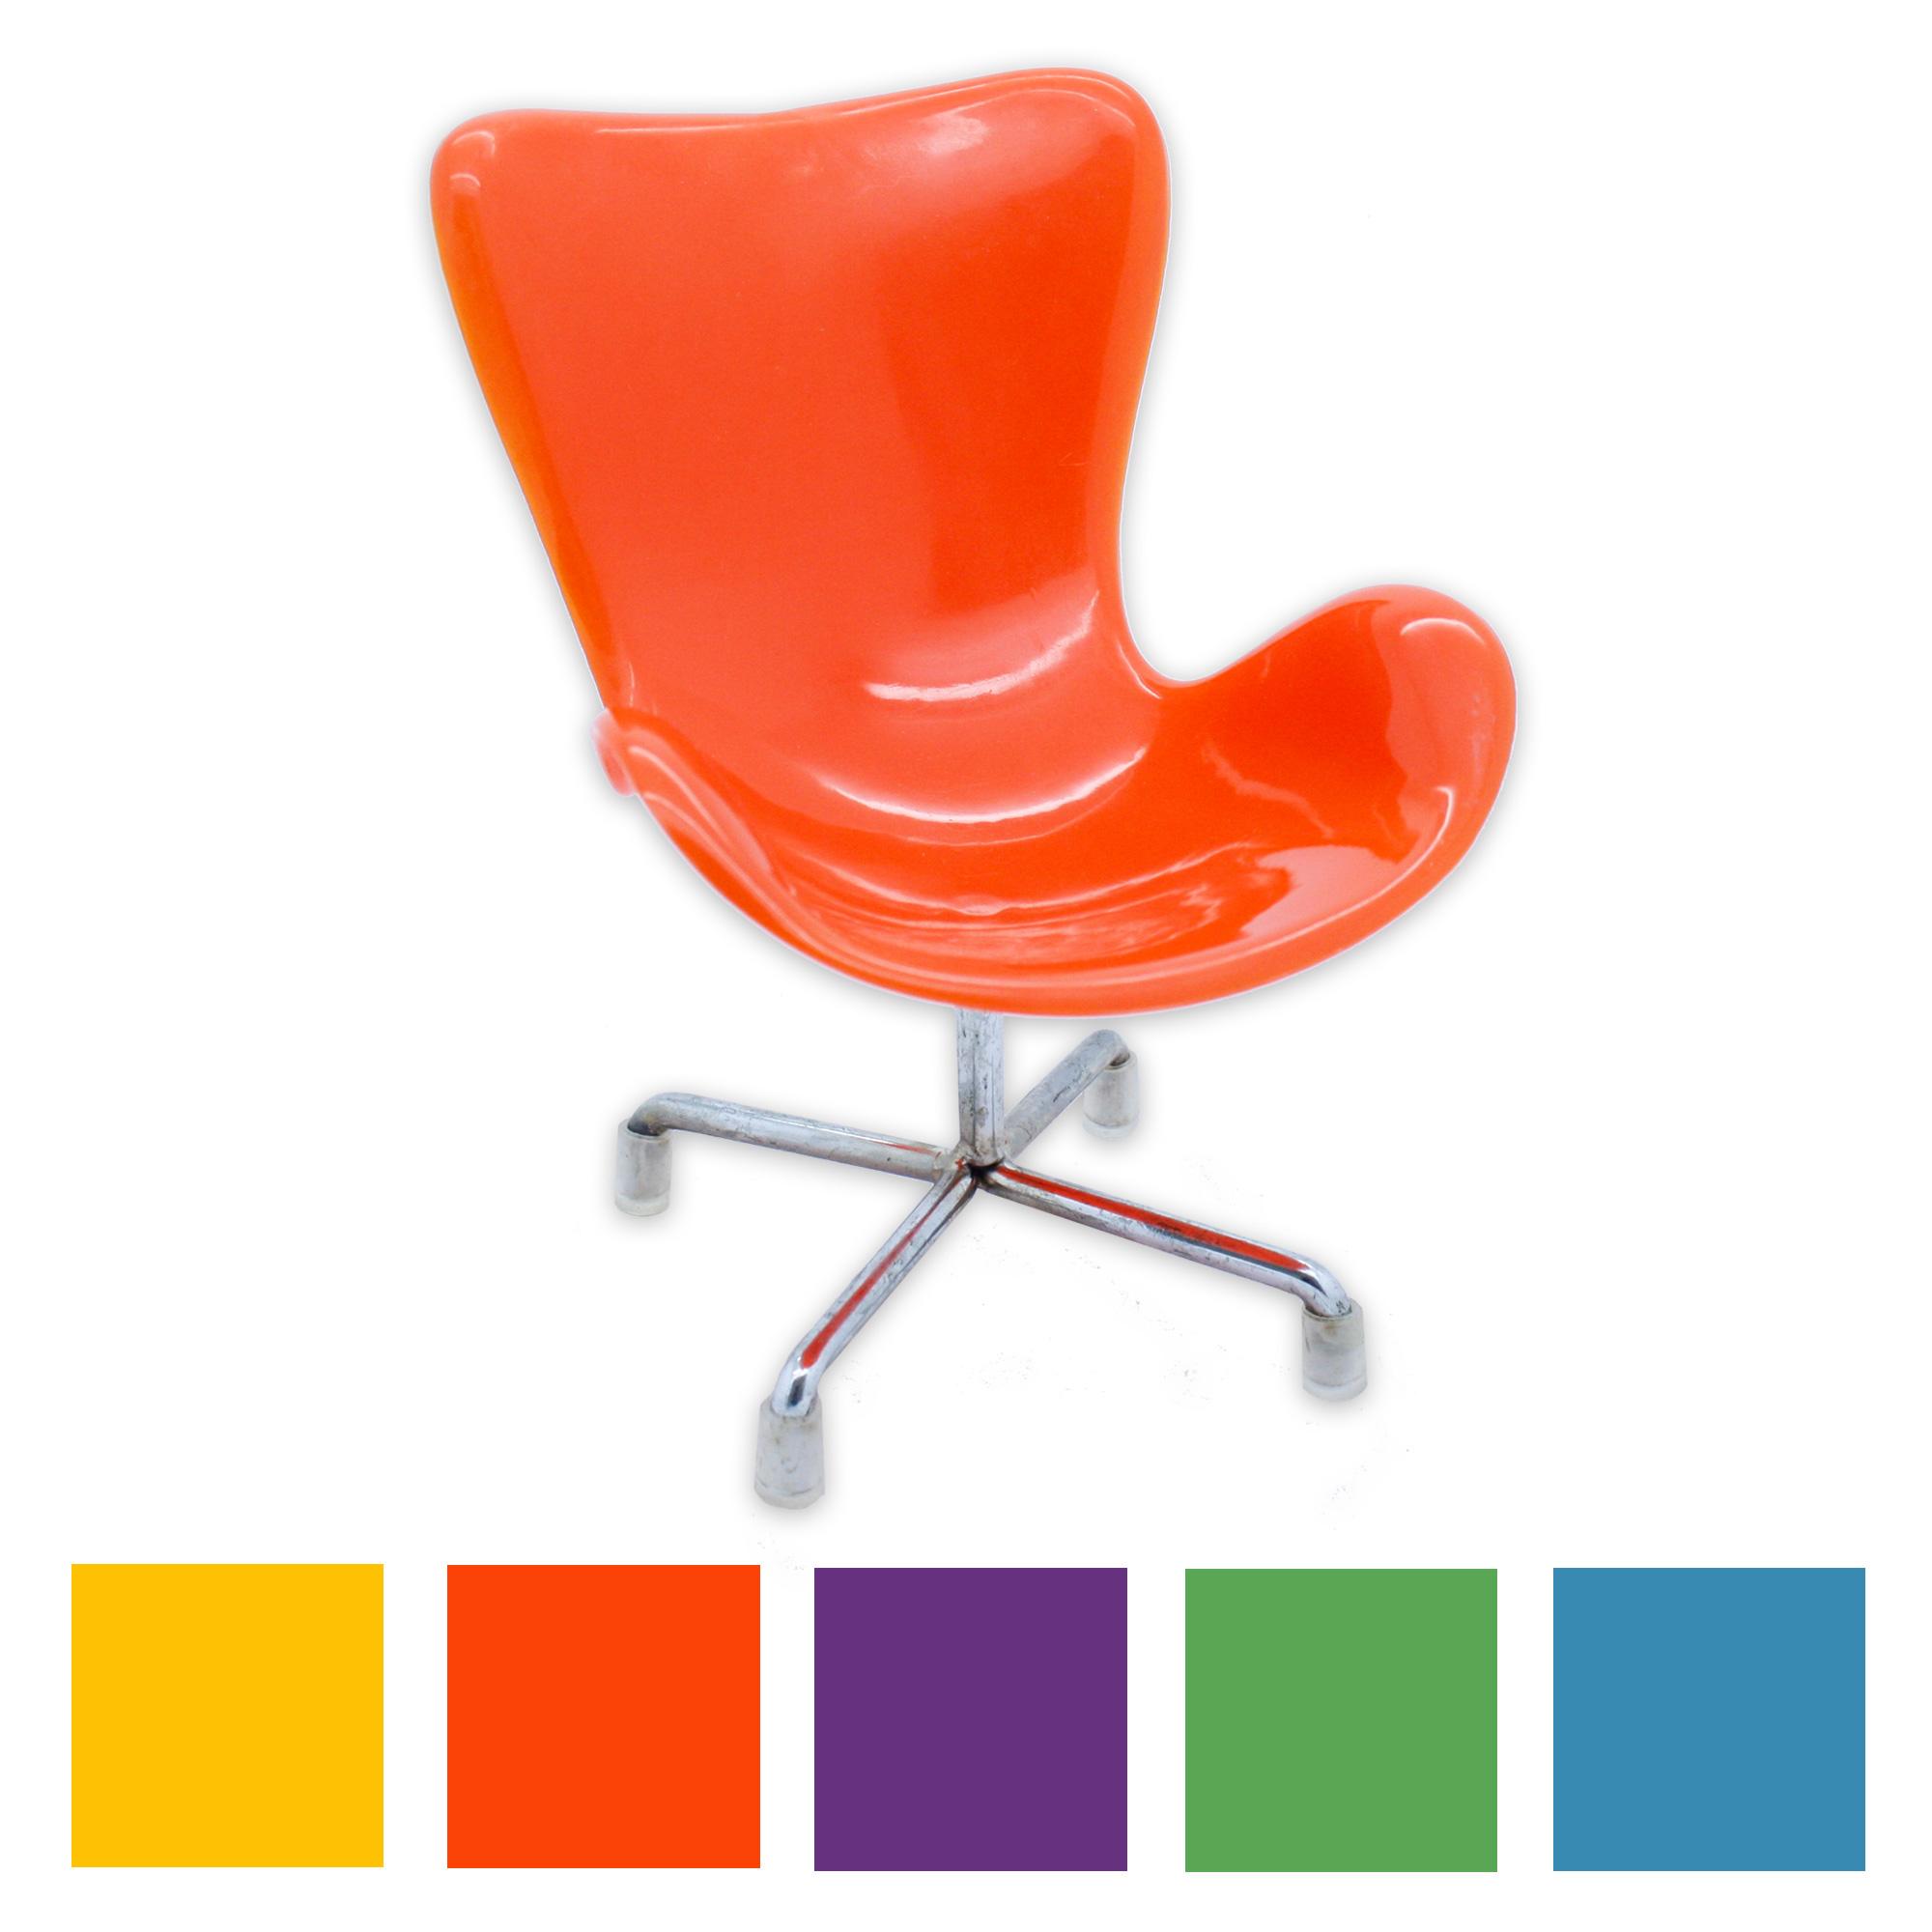 chair mobile stand office leg rest phone holder mount plastic 5 colors ebay